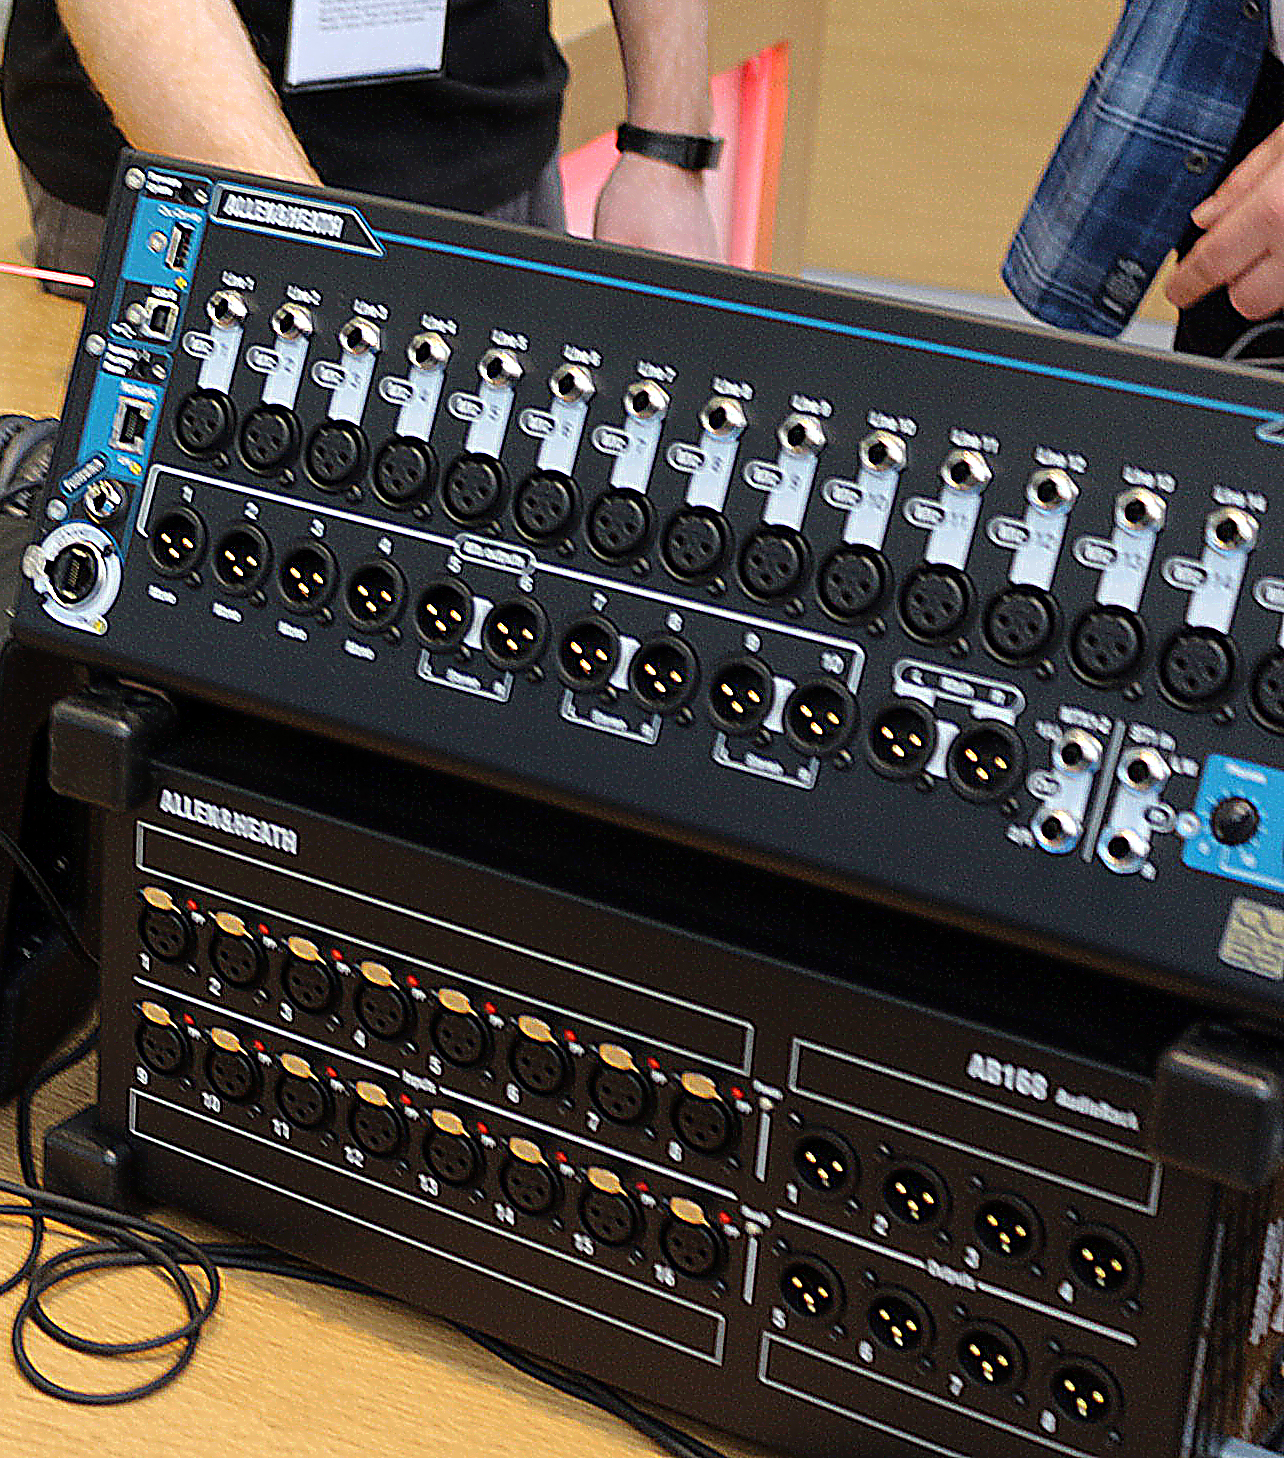 Allen & Heath neue Stagebox